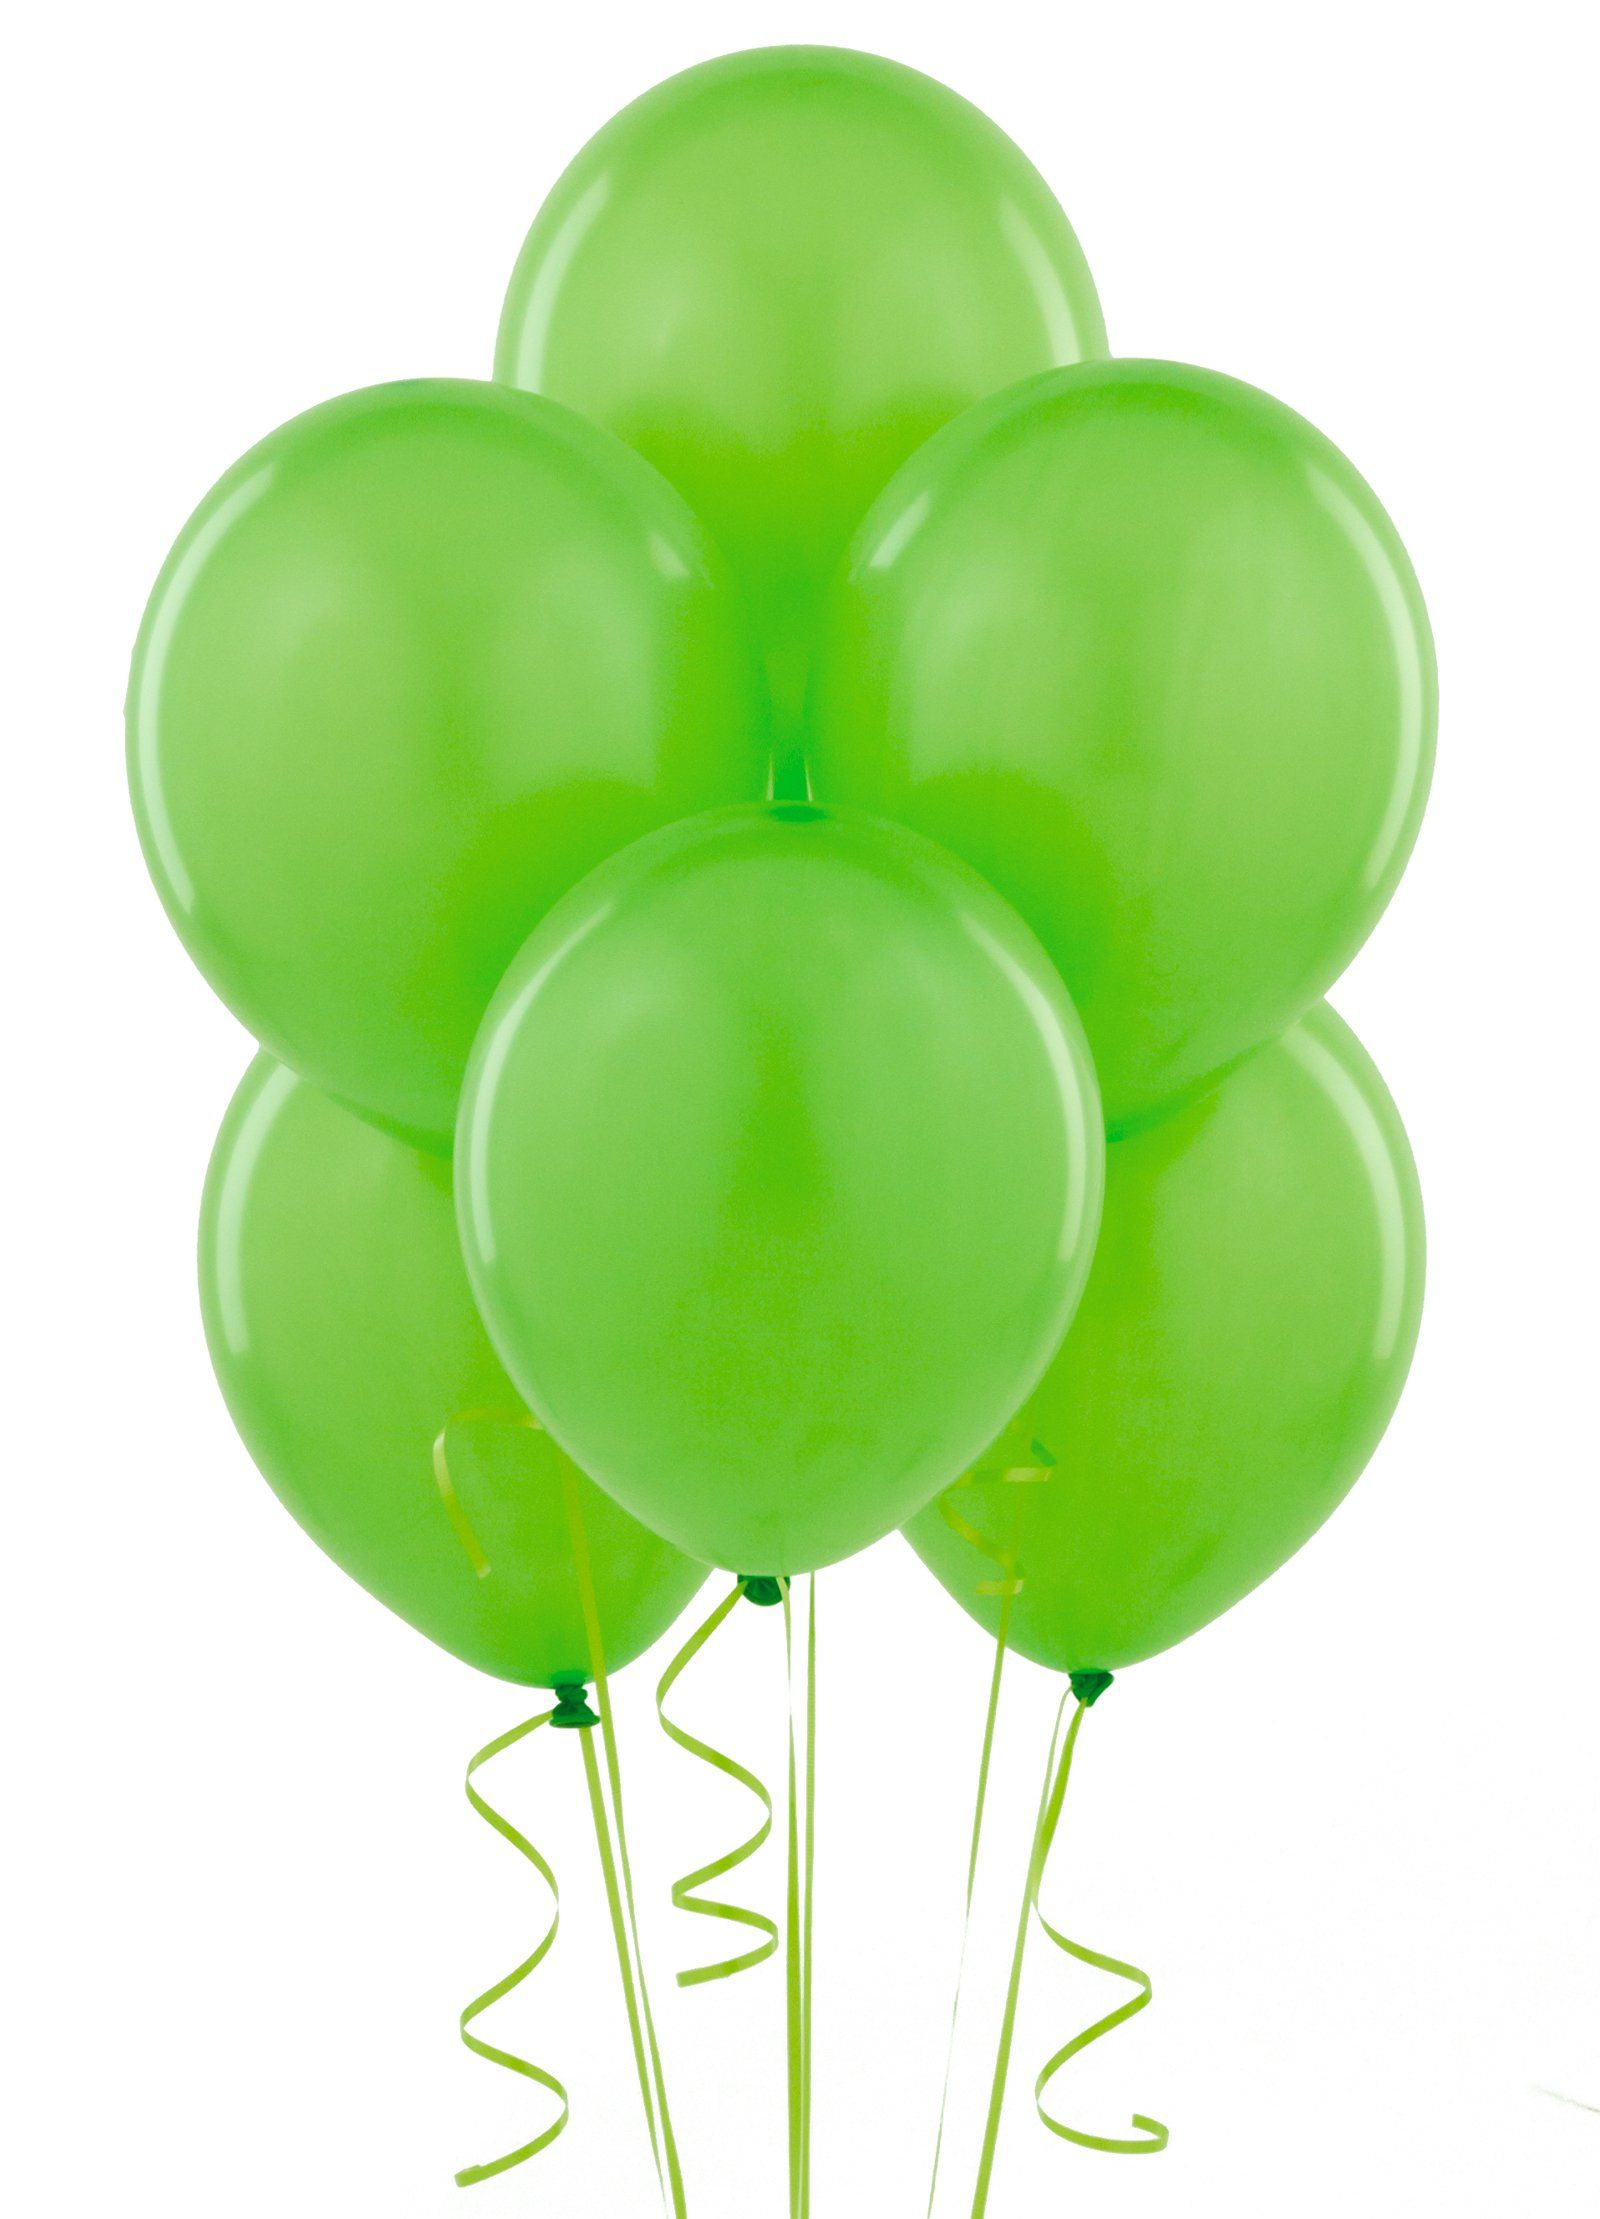 Green and blue balloons - Fresh Lime Lime Green Balloons 6